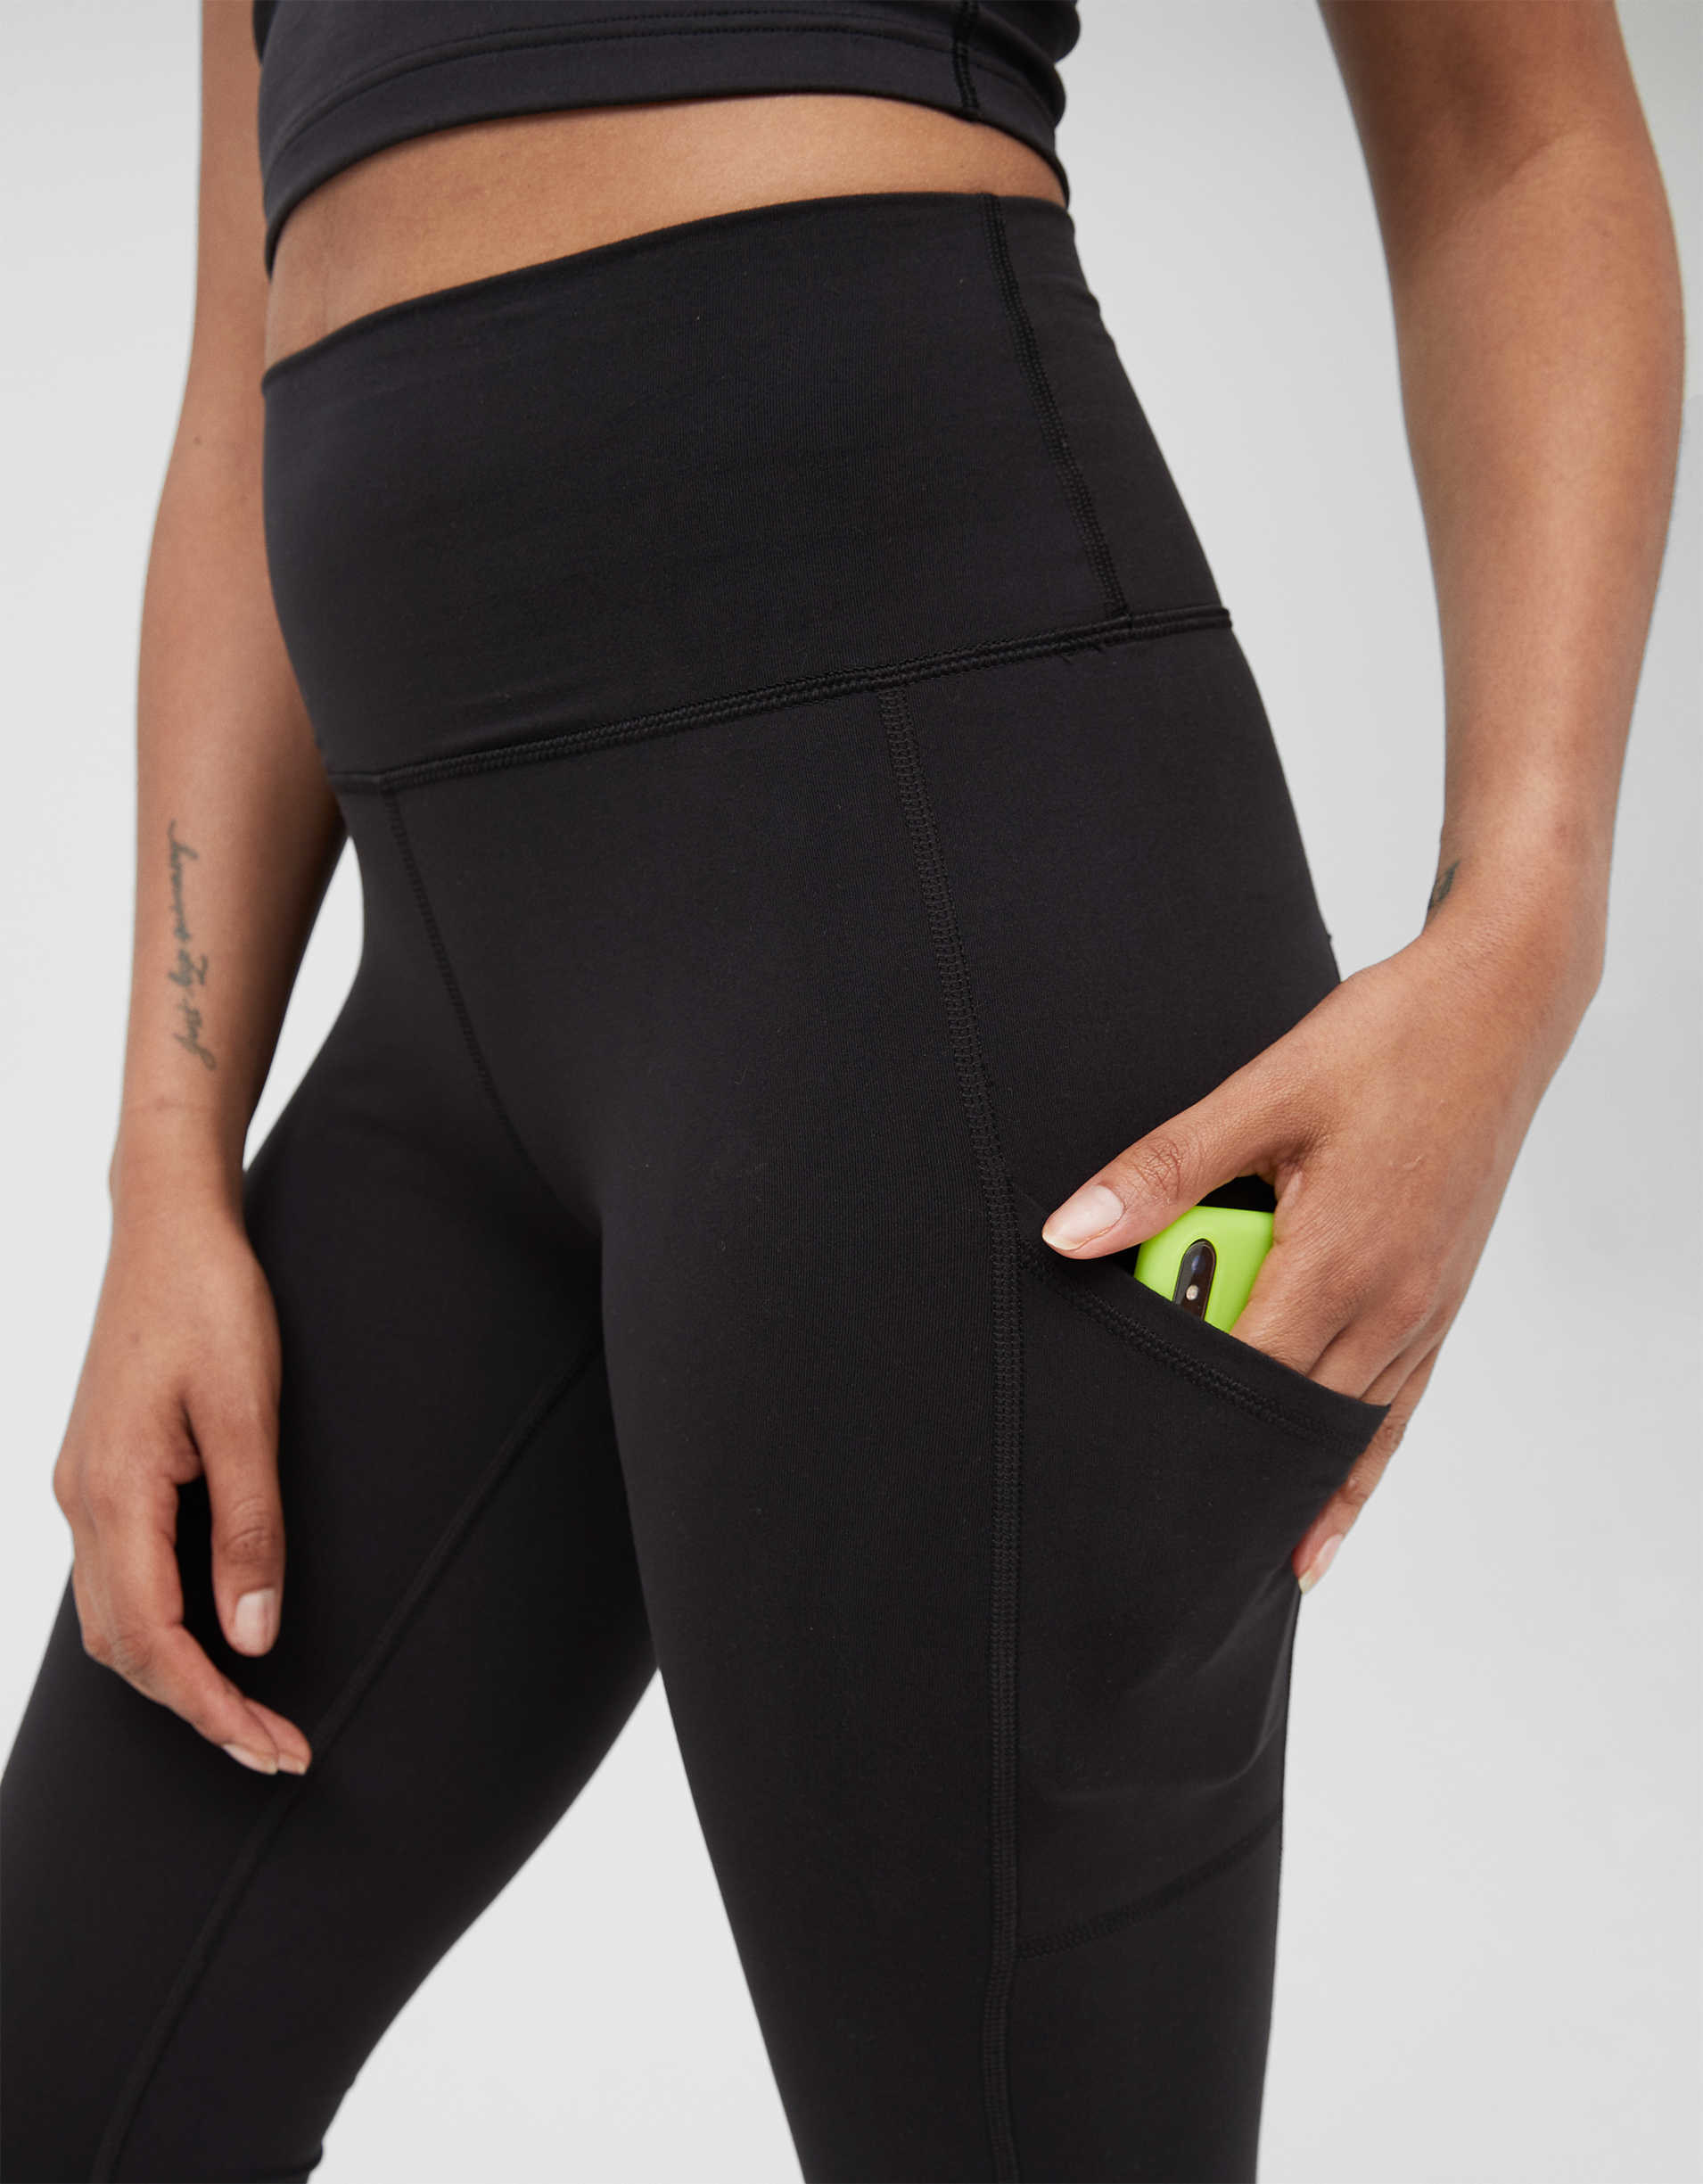 Closeup of a model wearing the black leggings with a hand on a phone in the side pocket